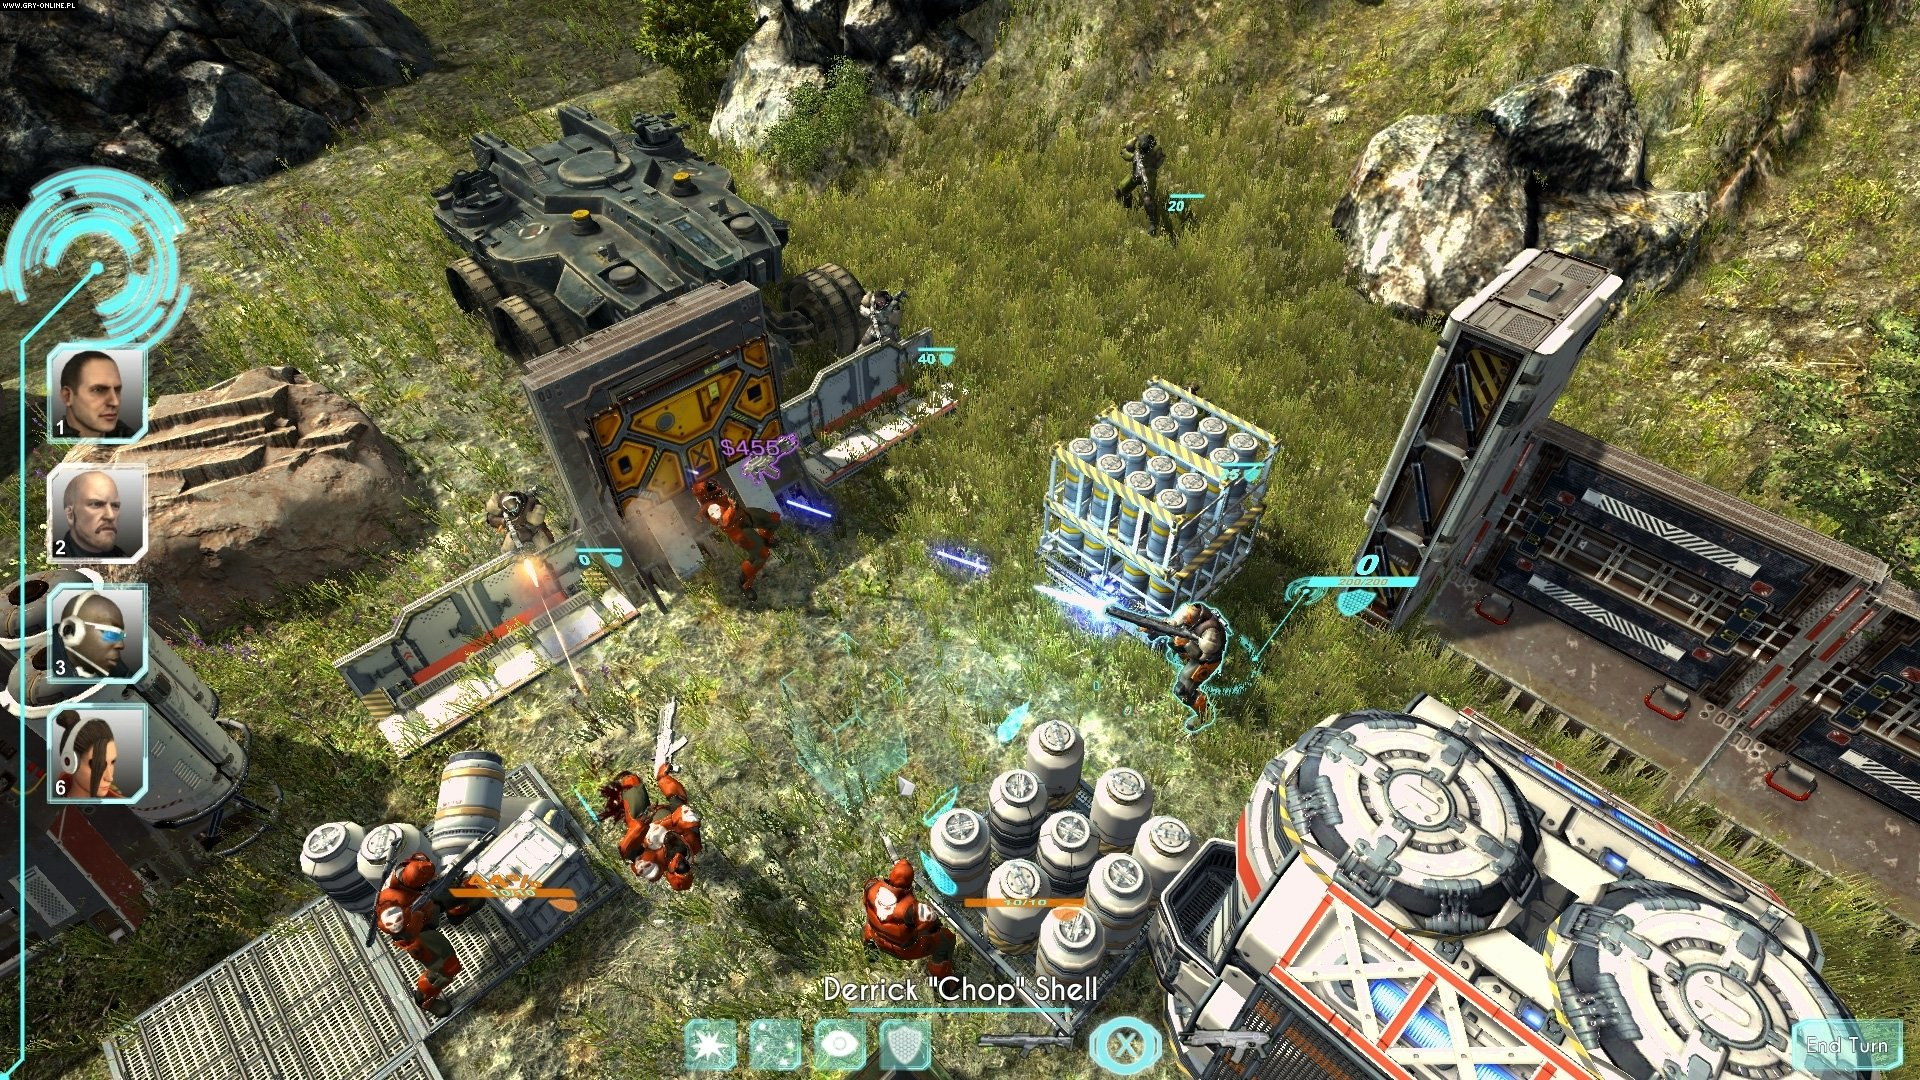 Shock Tactics PC Games Image 3/9, Point Blank Games, EuroVideo Medien